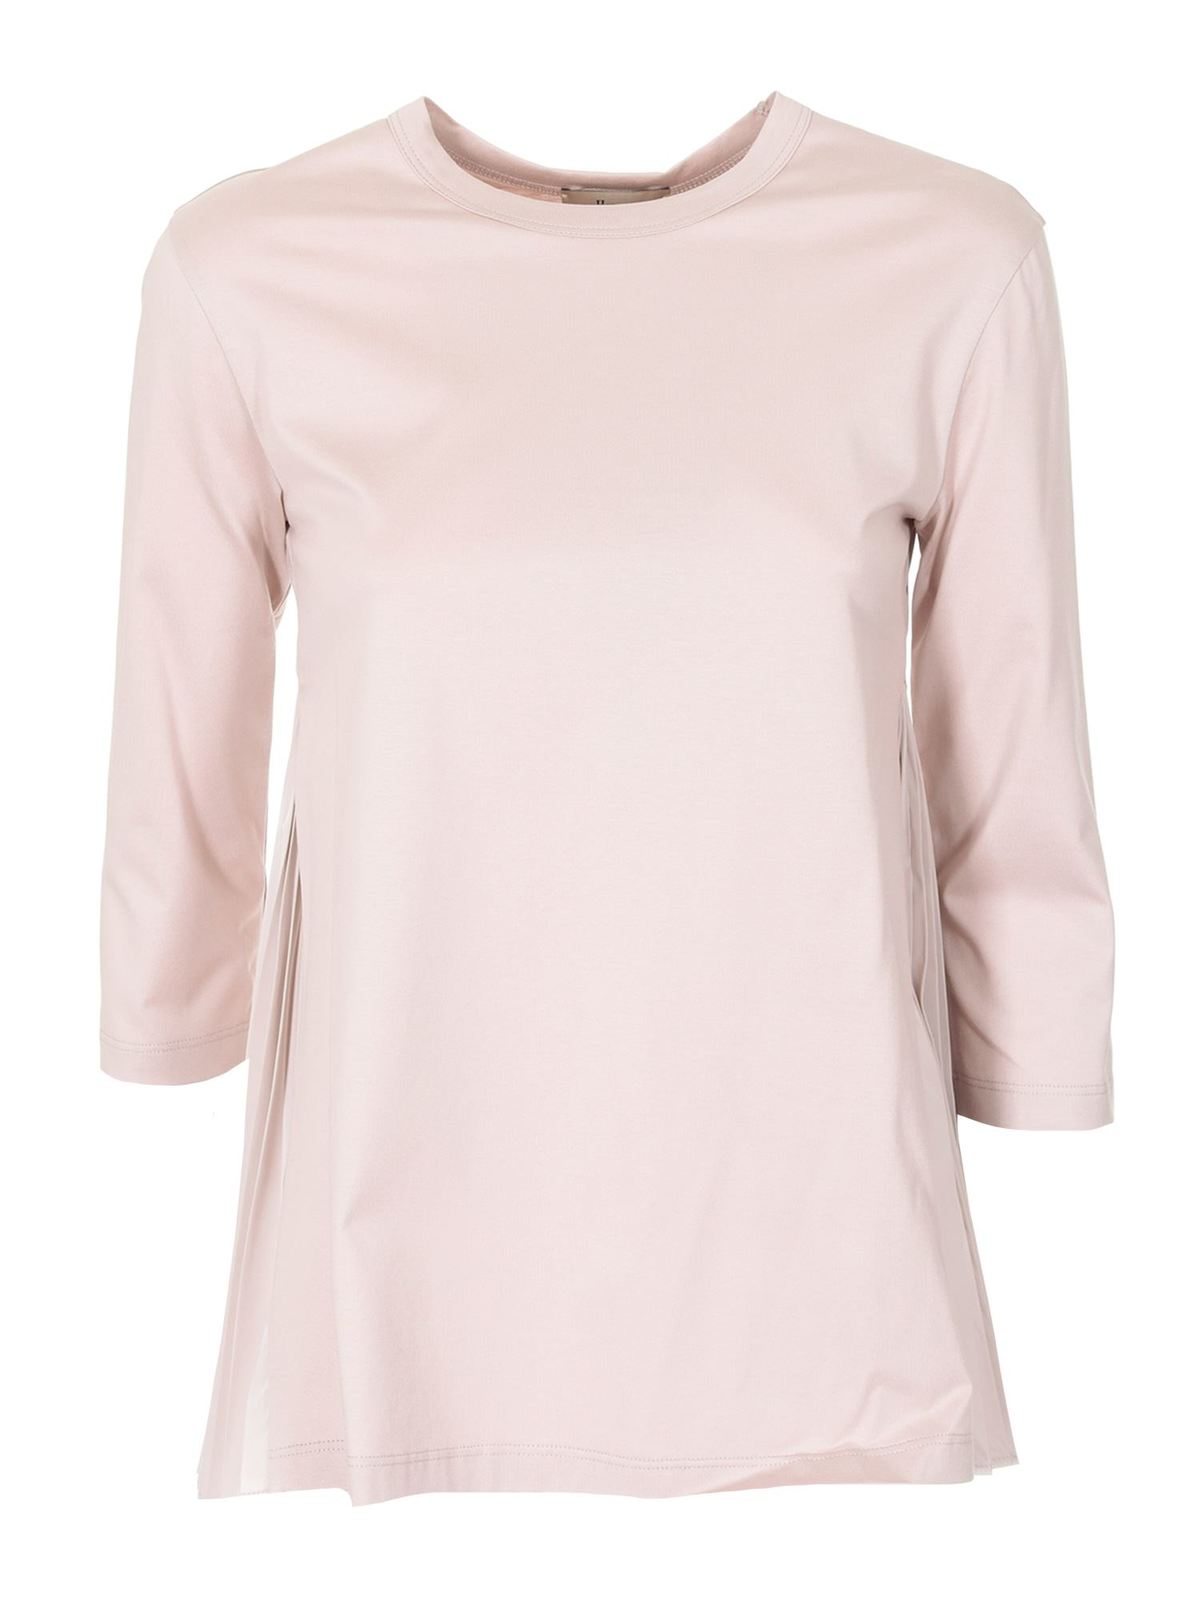 Herno THREE-QUARTER SLEEVE T-SHIRT IN PINK